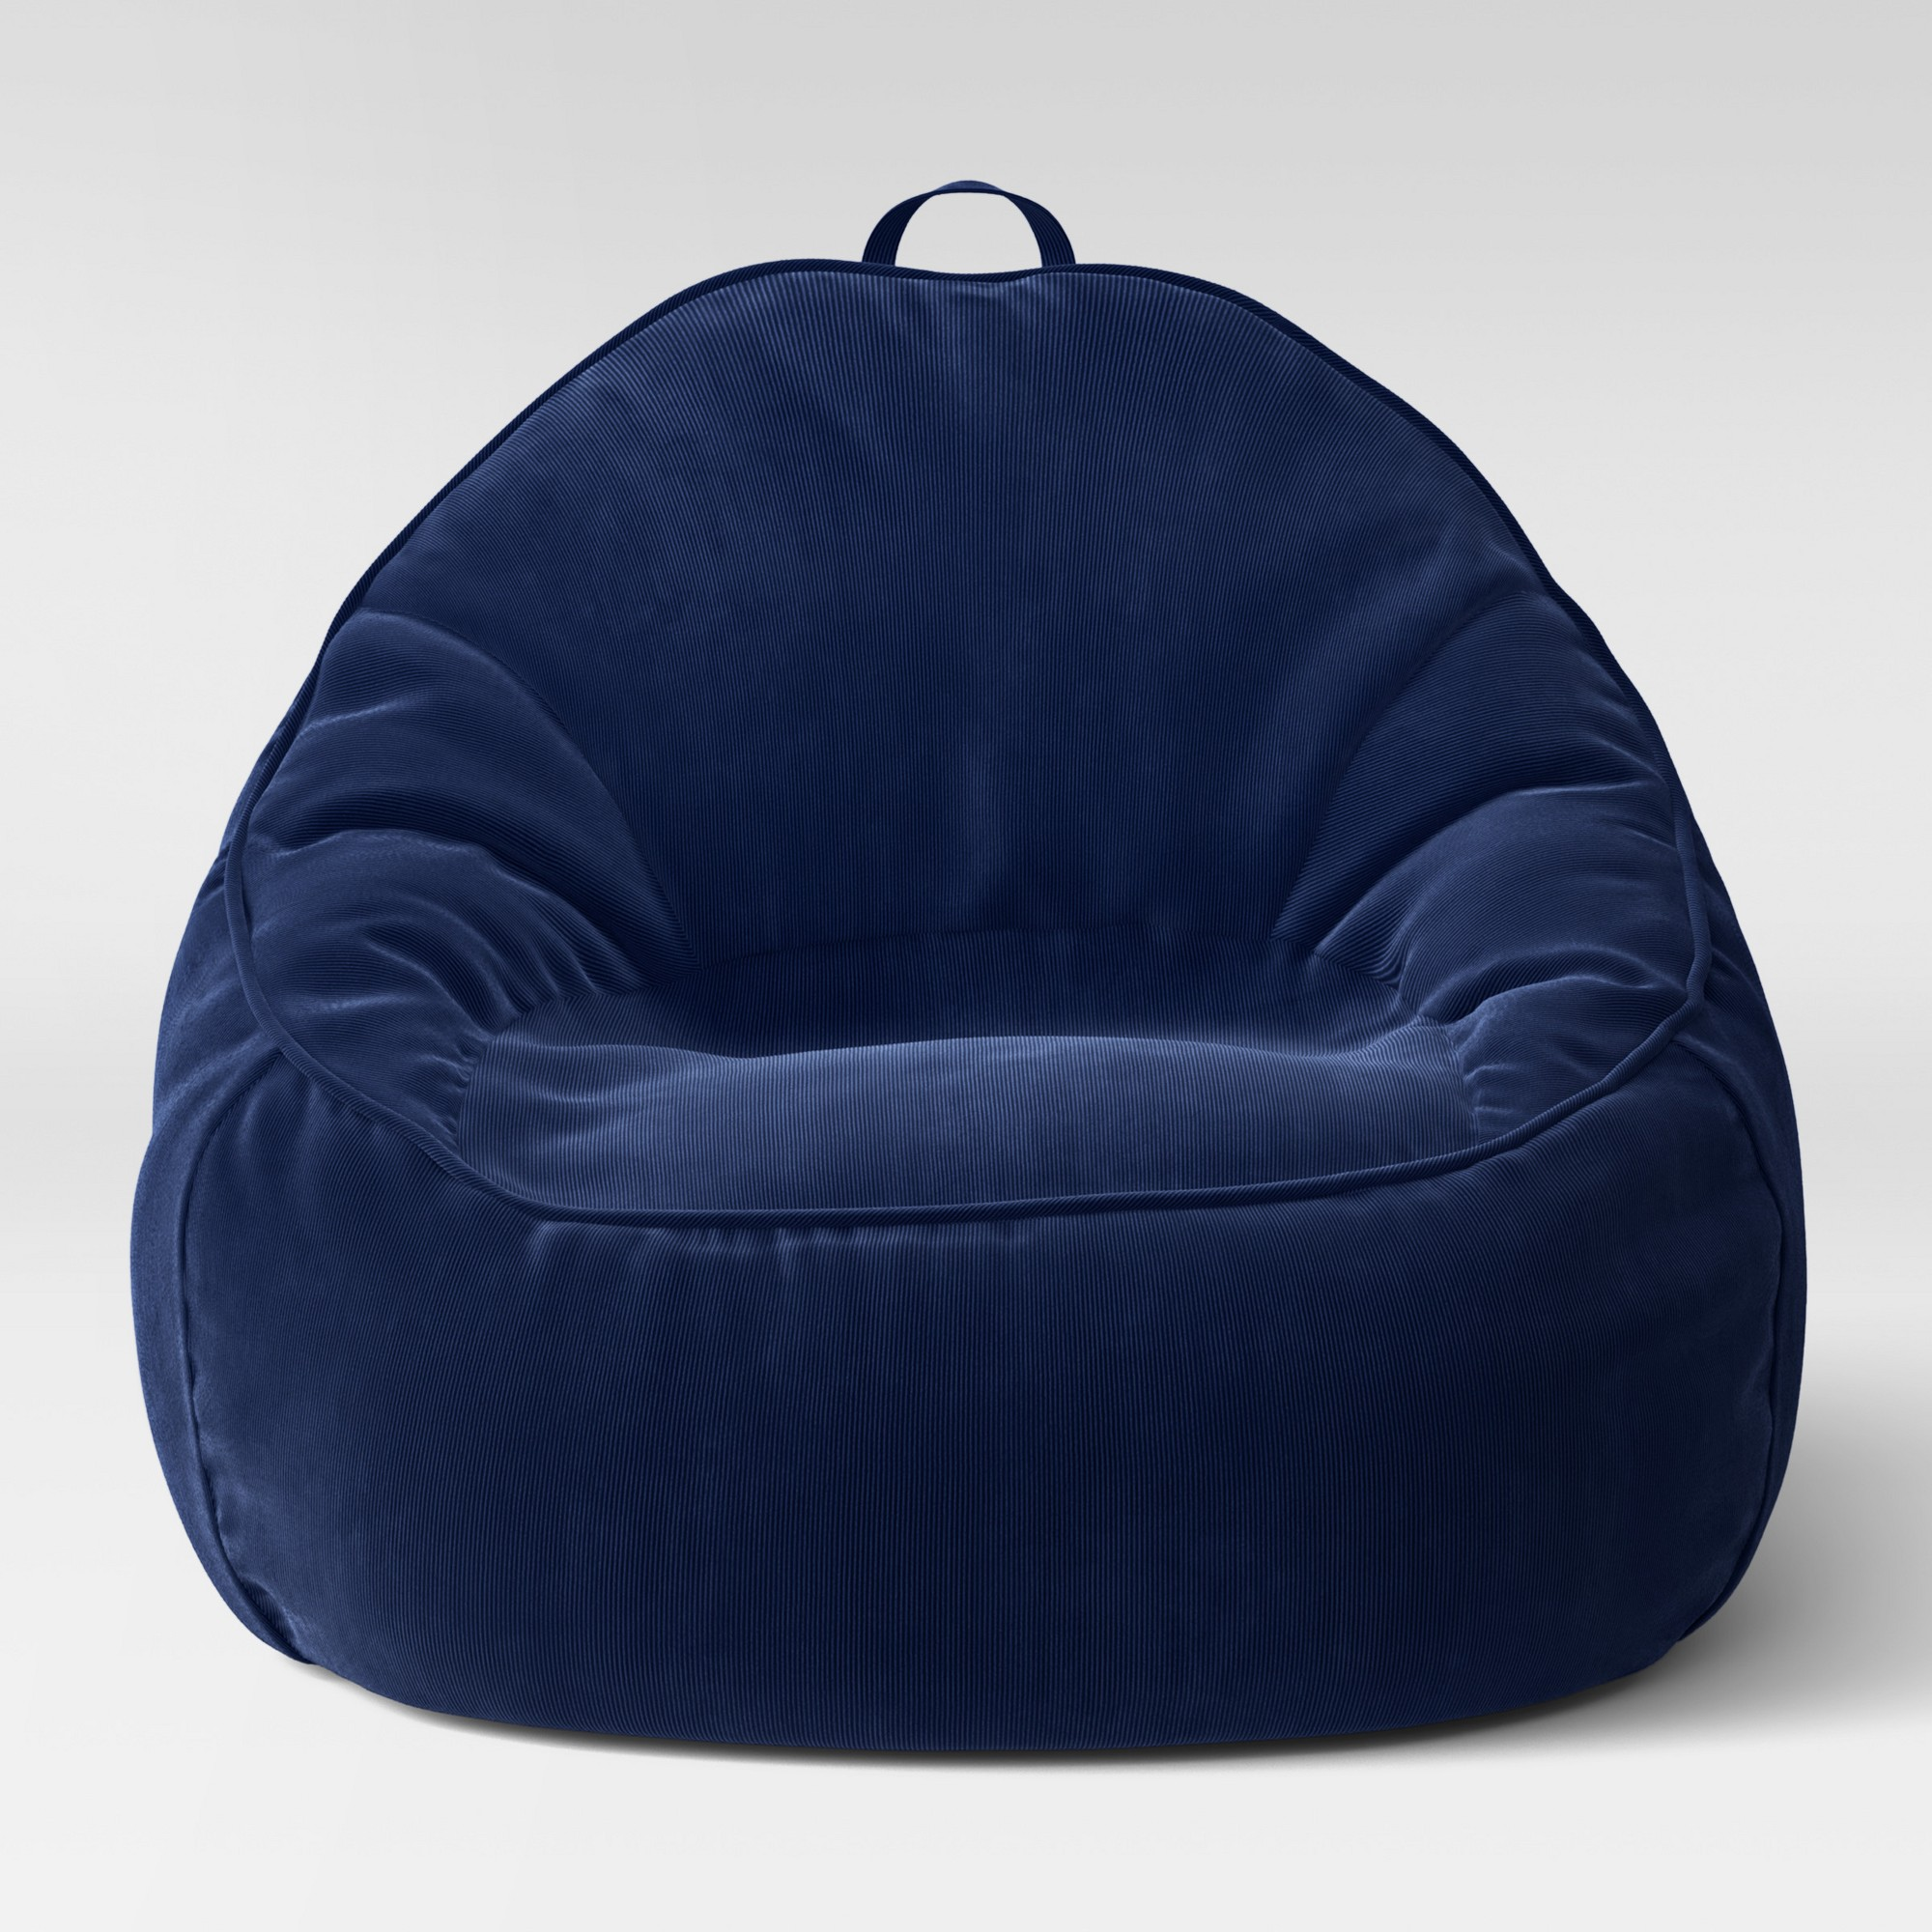 Fantastic Xl Structured Bean Bag Chair Removable Cover Corduroy Blue Frankydiablos Diy Chair Ideas Frankydiabloscom